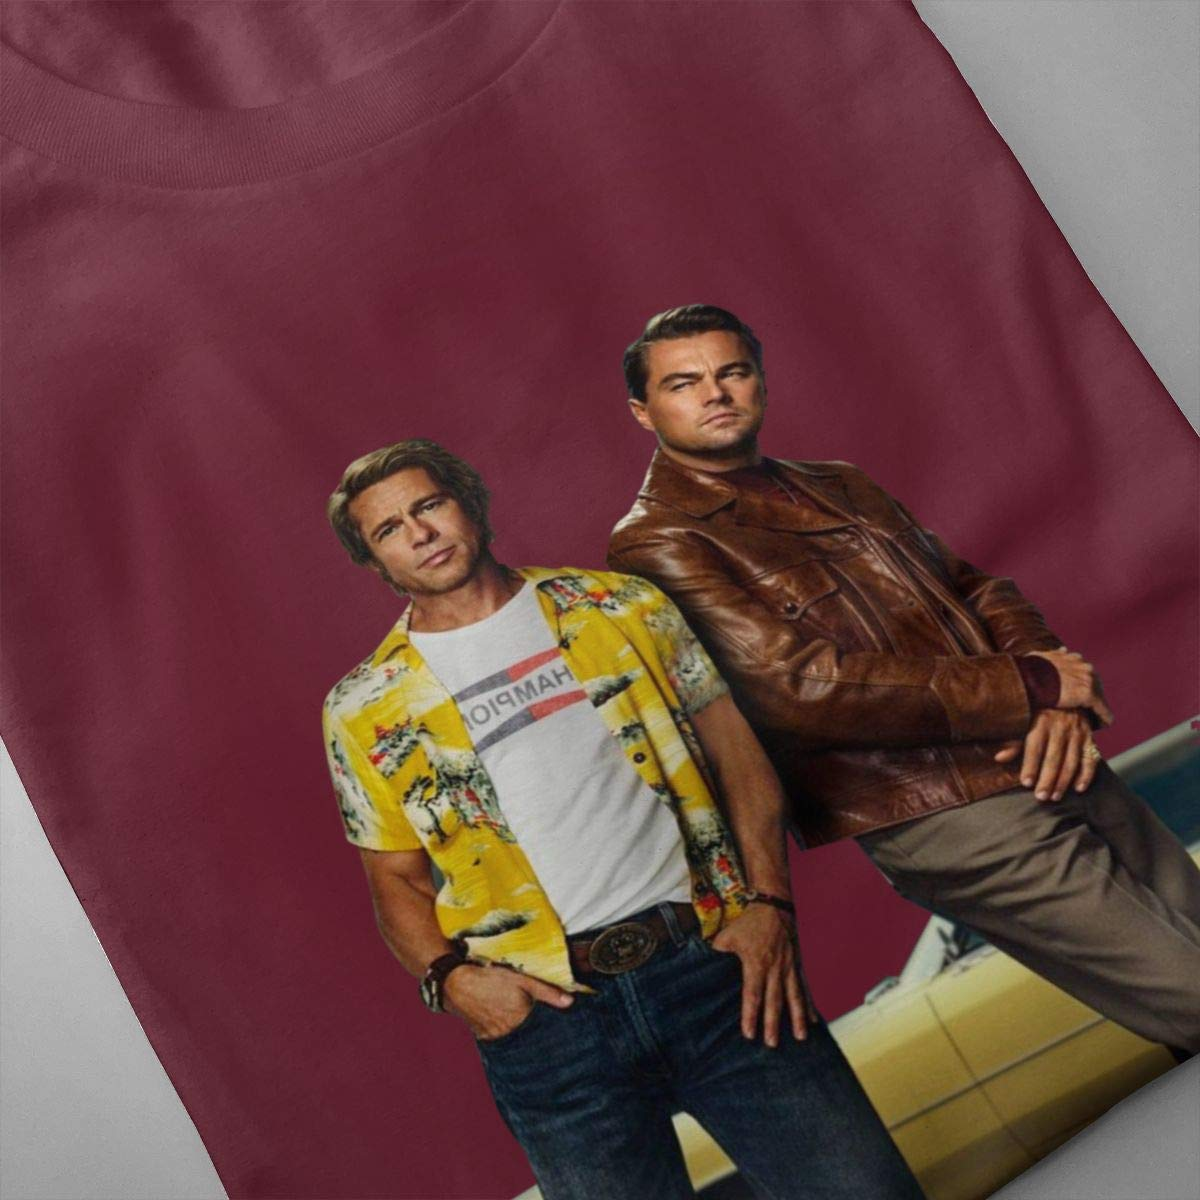 Kennethallen Once Upon A Time in Hollywood Cute T-Shirt for Teen Kids Boys Girls